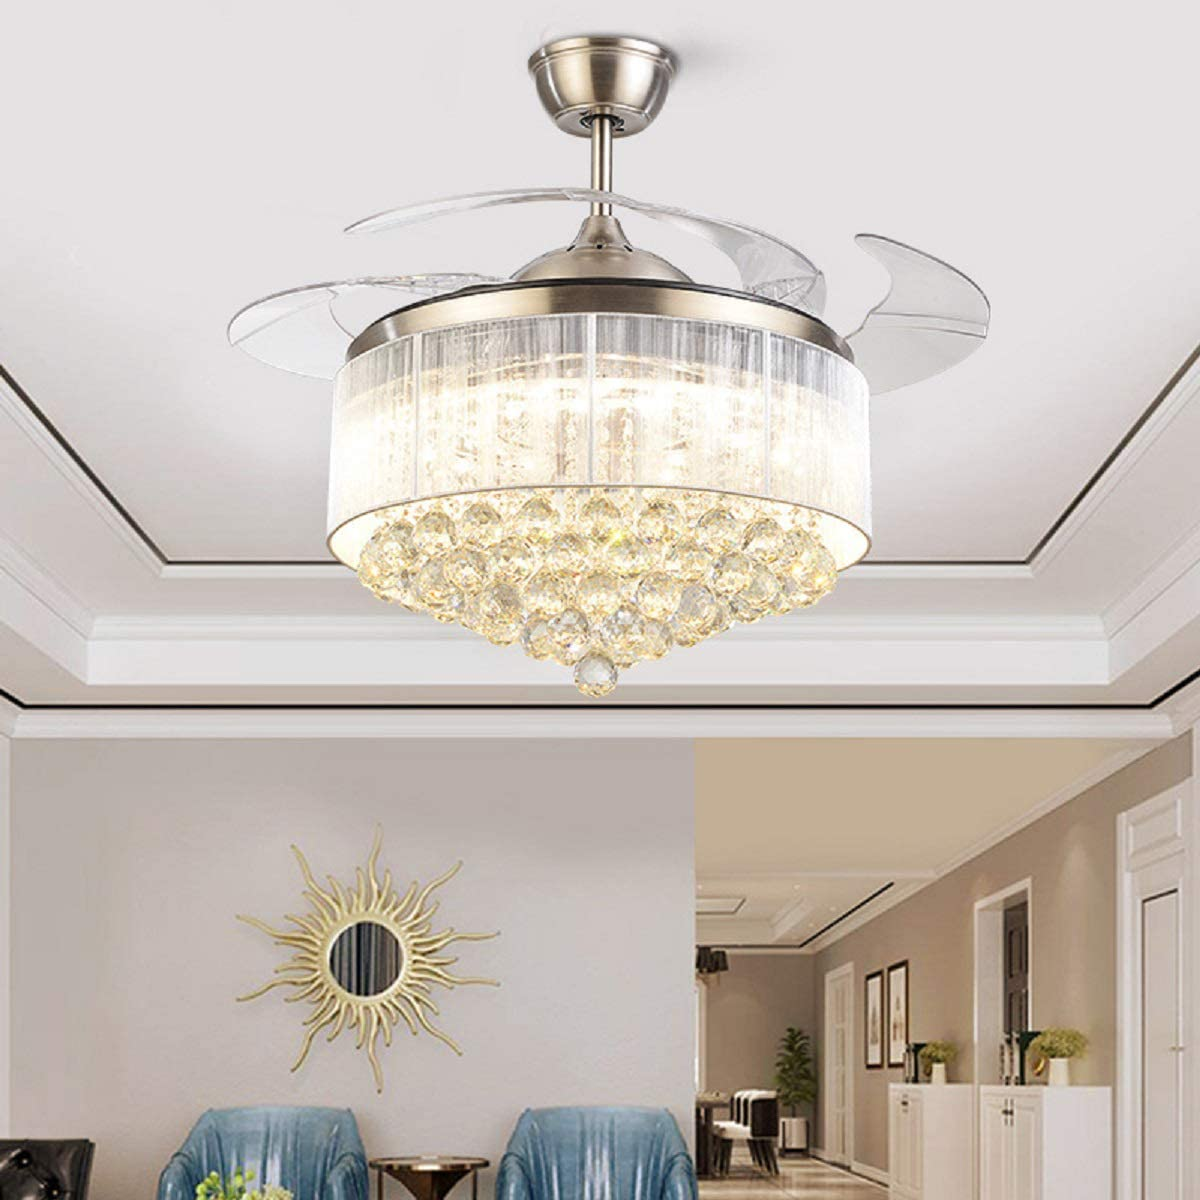 42inch Chrome Dimmable Surprise price Fandelier Crystal Fans with San Antonio Mall Light Ceiling